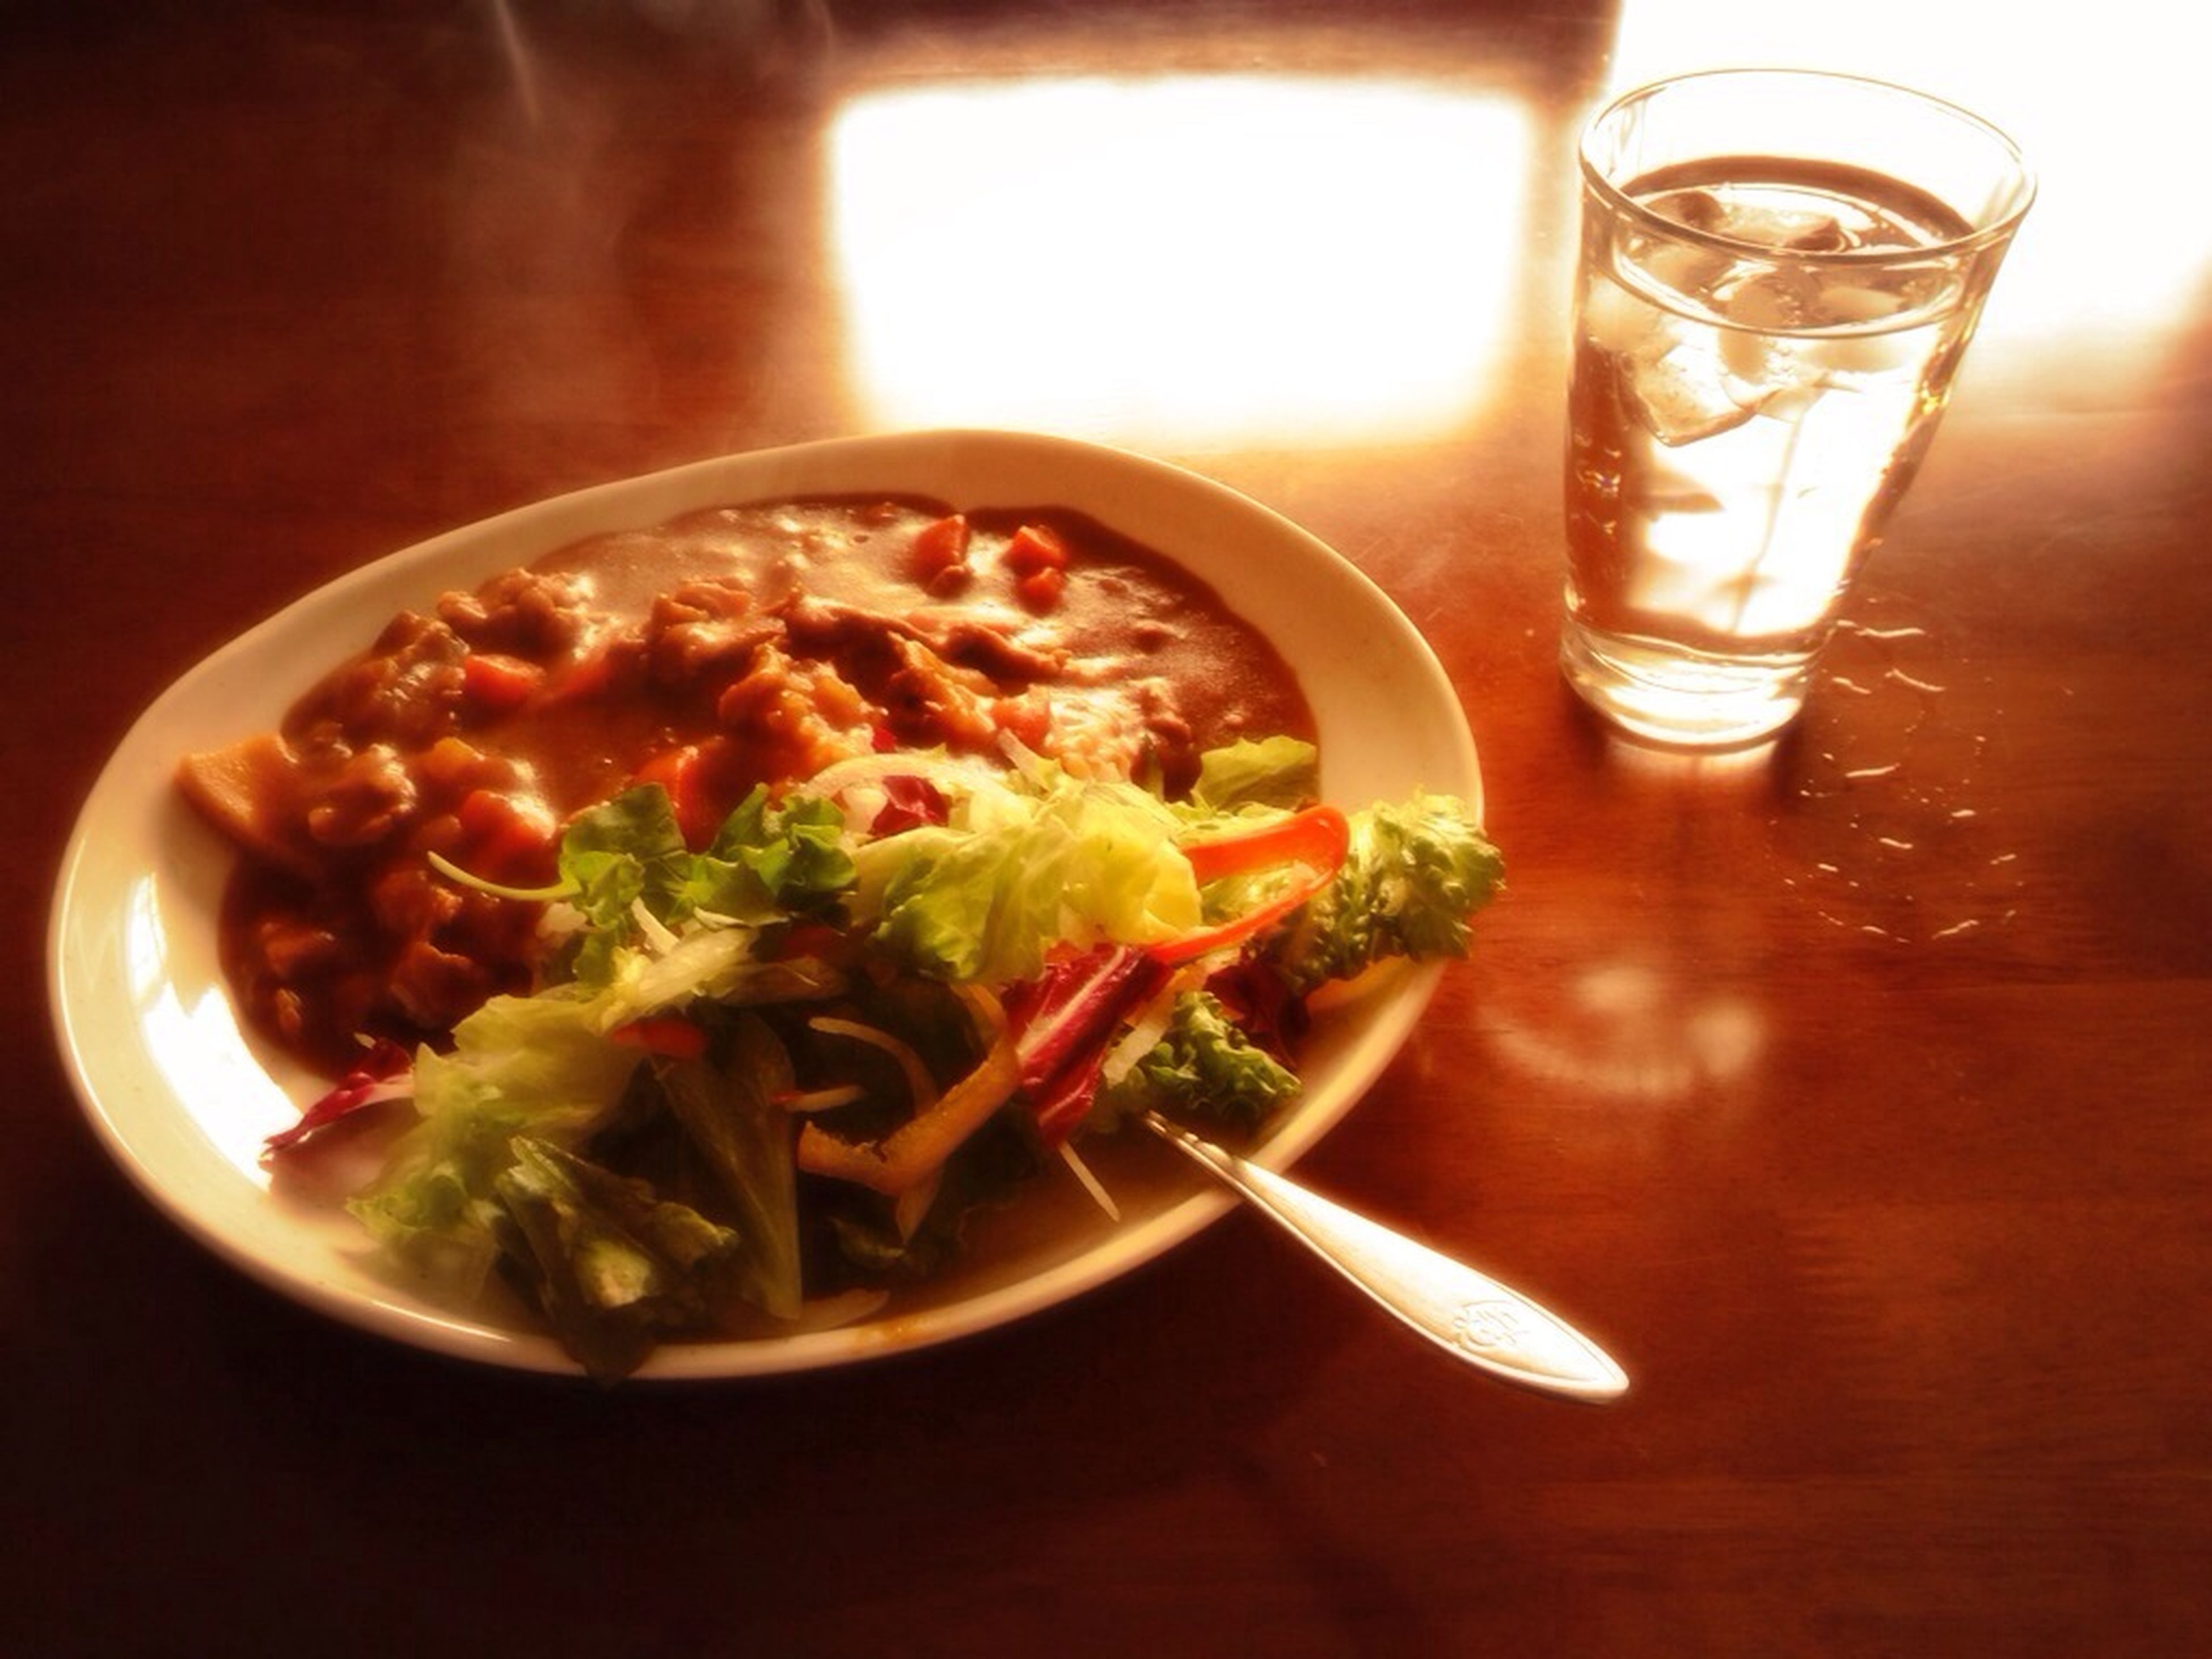 food and drink, indoors, table, freshness, food, still life, healthy eating, plate, ready-to-eat, drink, bowl, drinking glass, serving size, meal, close-up, served, refreshment, high angle view, spoon, soup